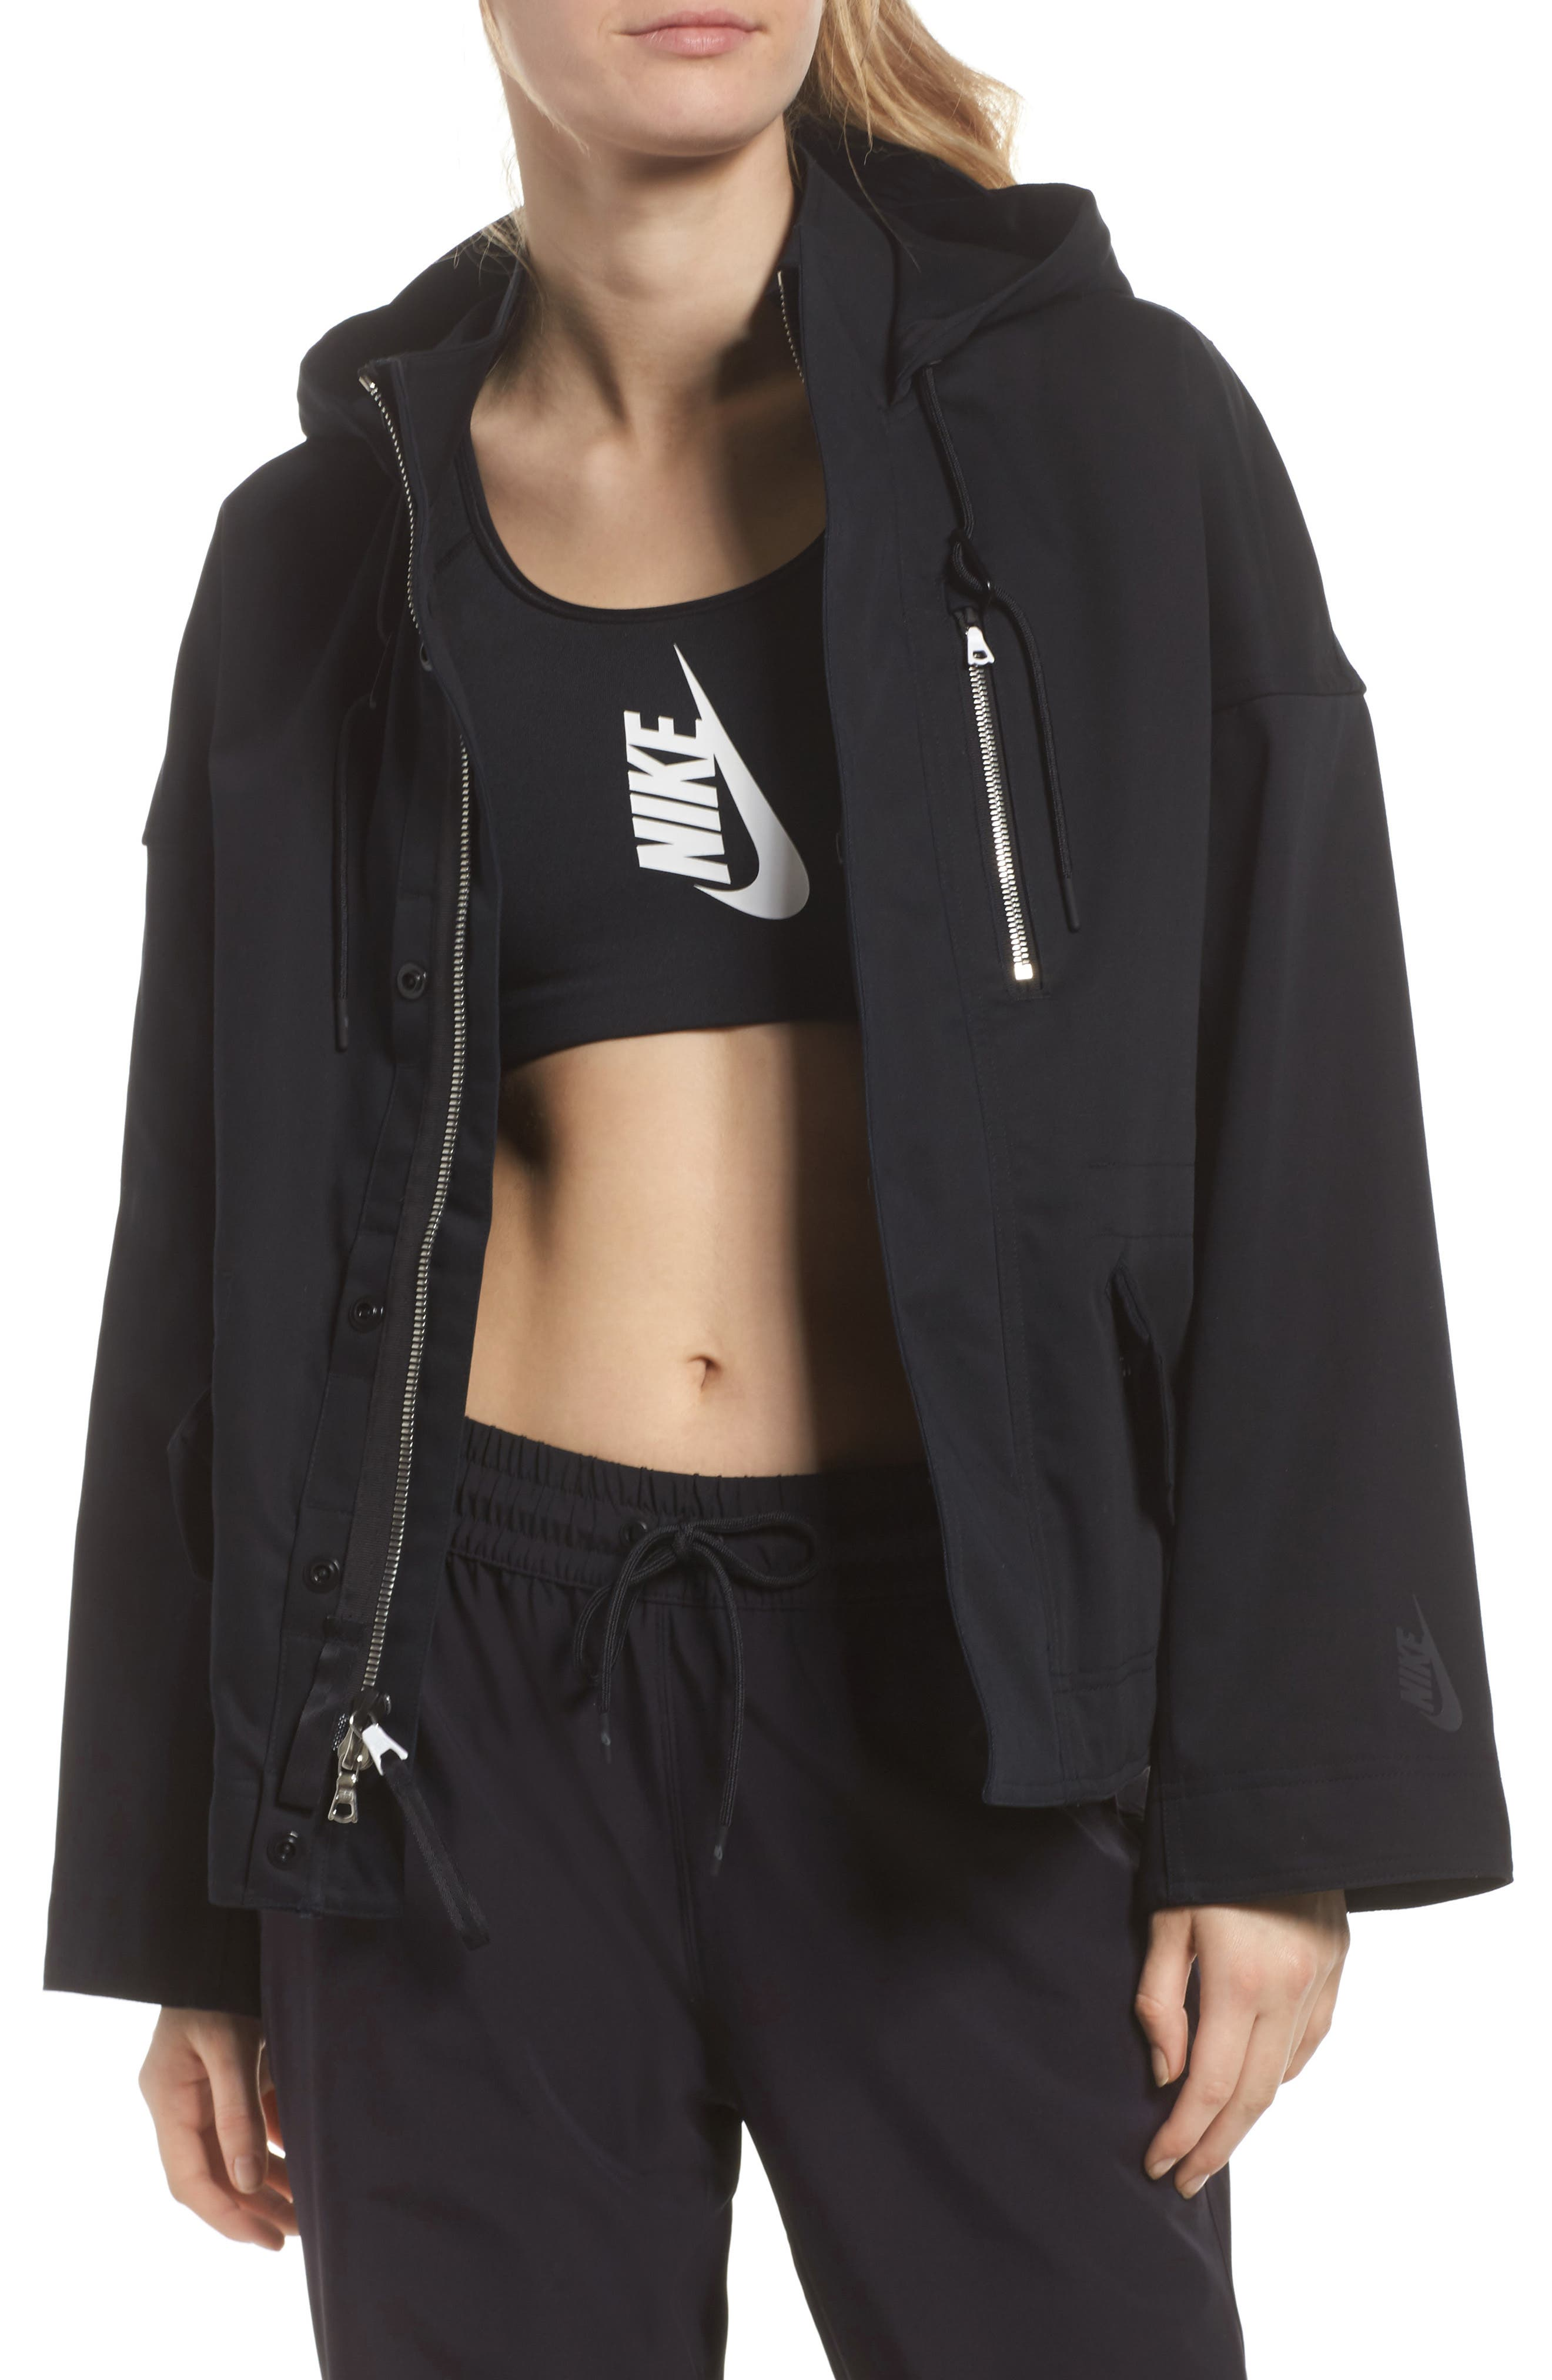 NikeLab Collection Women's Tactical Jacket,                         Main,                         color,